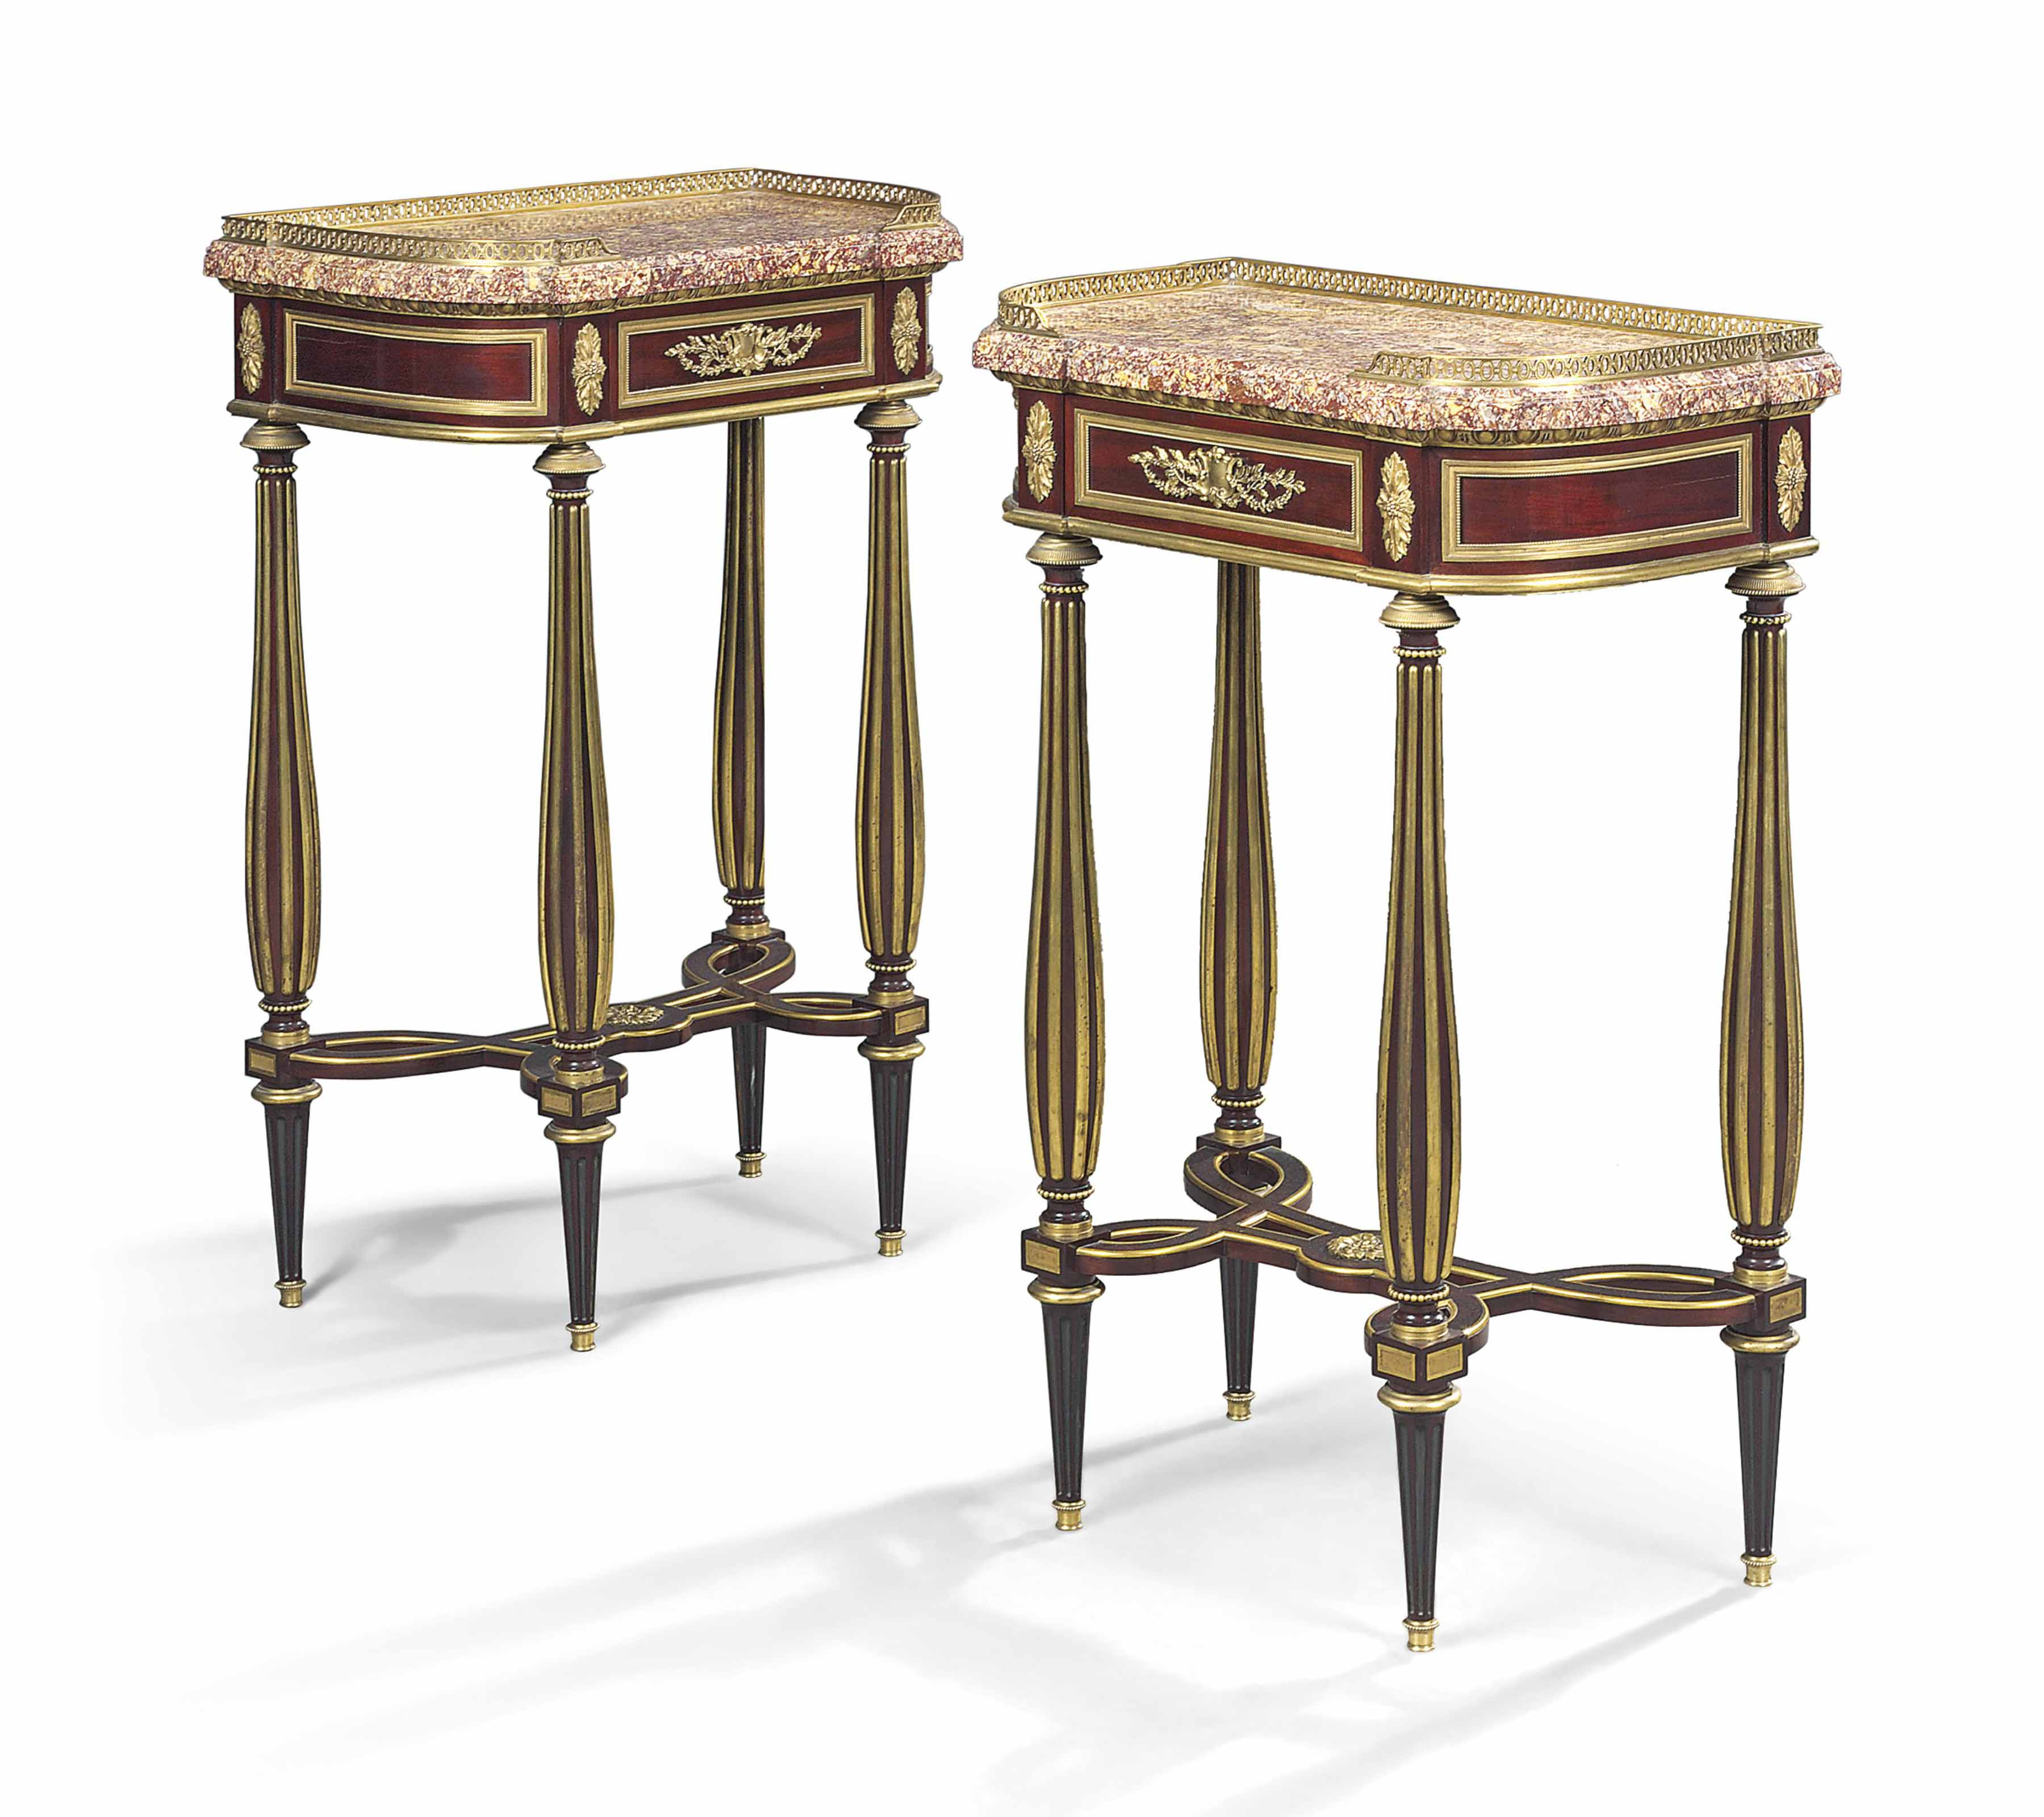 A PAIR OF FRENCH ORMOLU-MOUNTED MAHOGANY CONSOLE TABLES